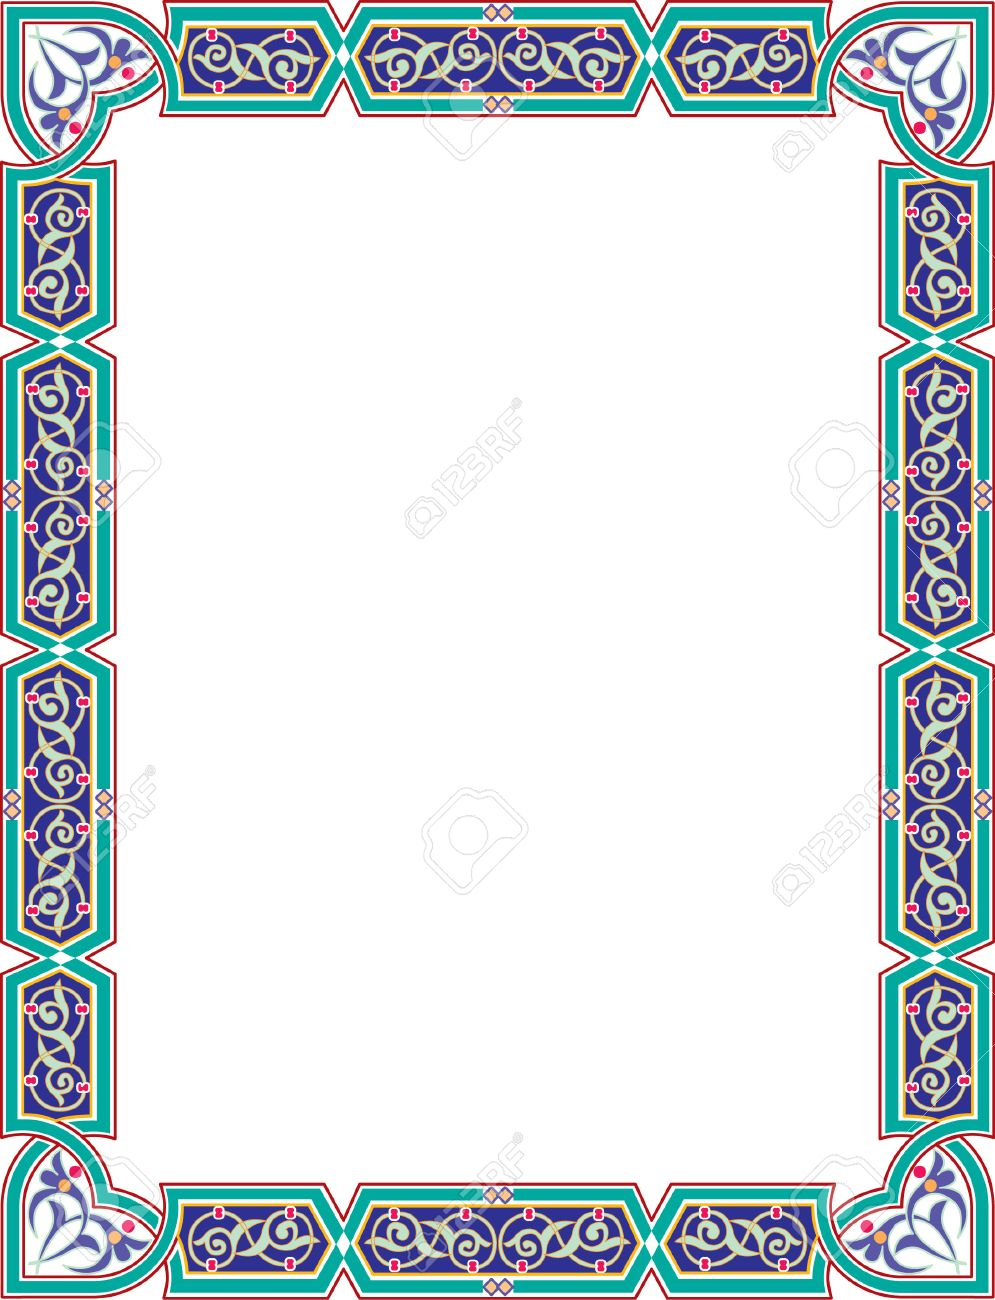 Islamic style border frame with elegant vector lines royalty free islamic style border frame with elegant vector lines stock vector 23185793 altavistaventures Images